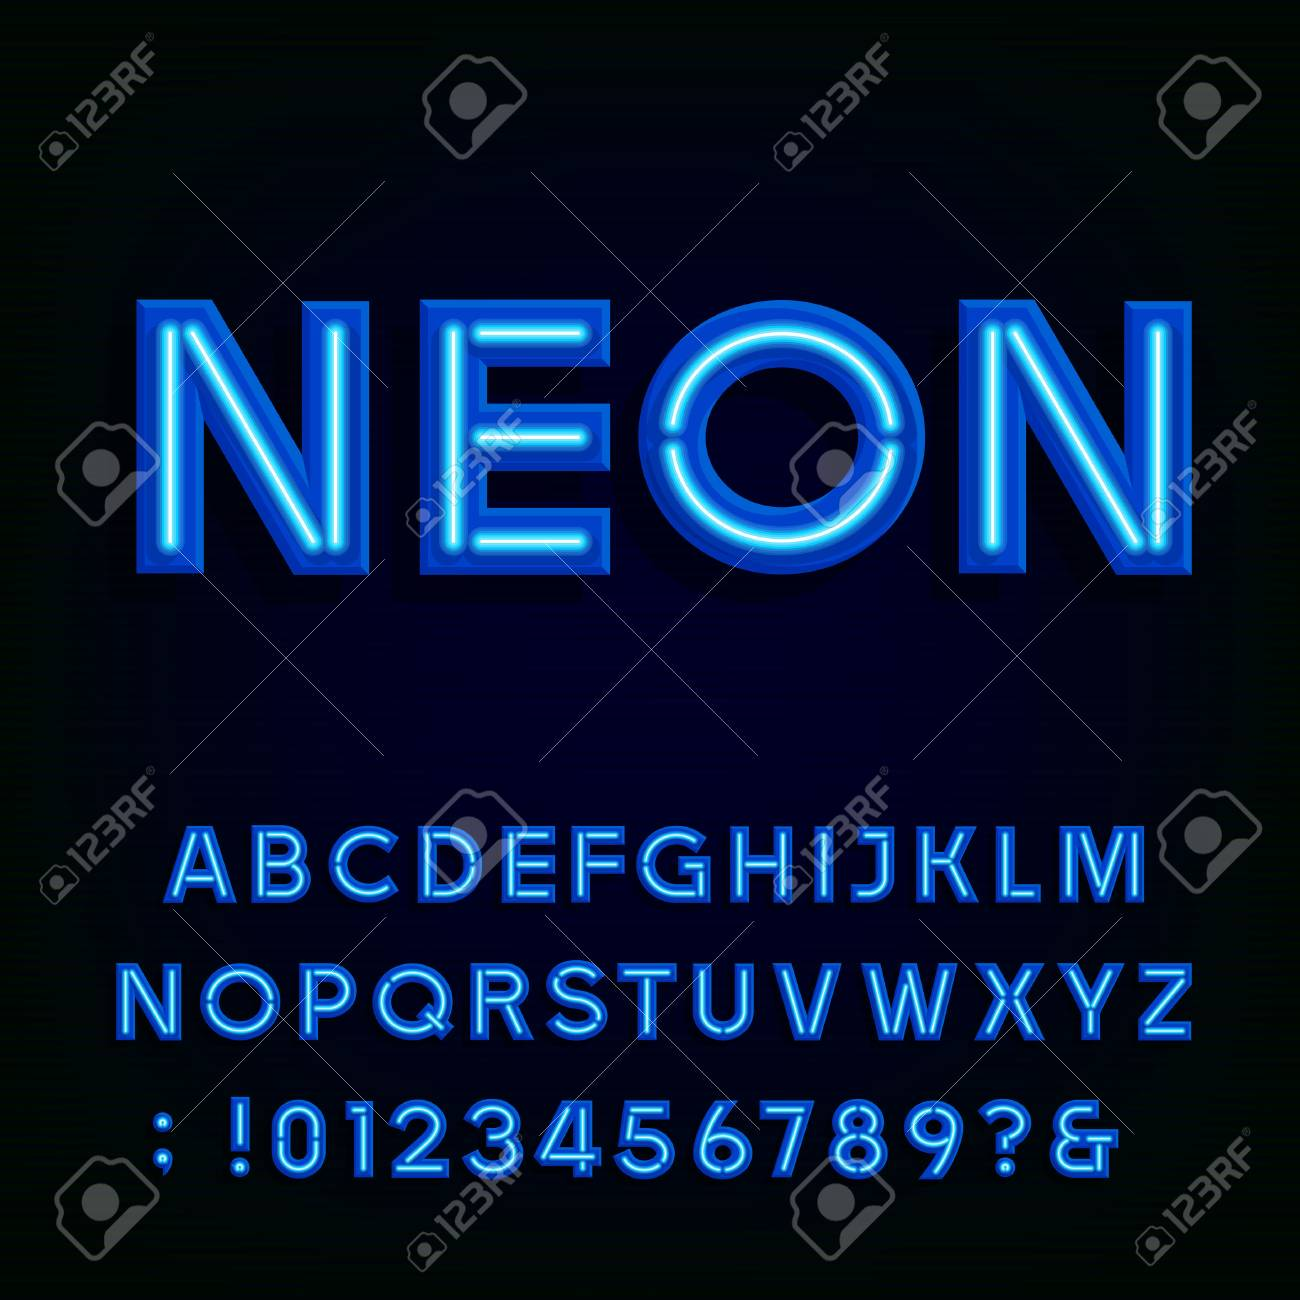 Blue neon light alphabet font. Neon tube effect letters and numbers on the dark background. typography for labels, titles, posters etc. - 50642986